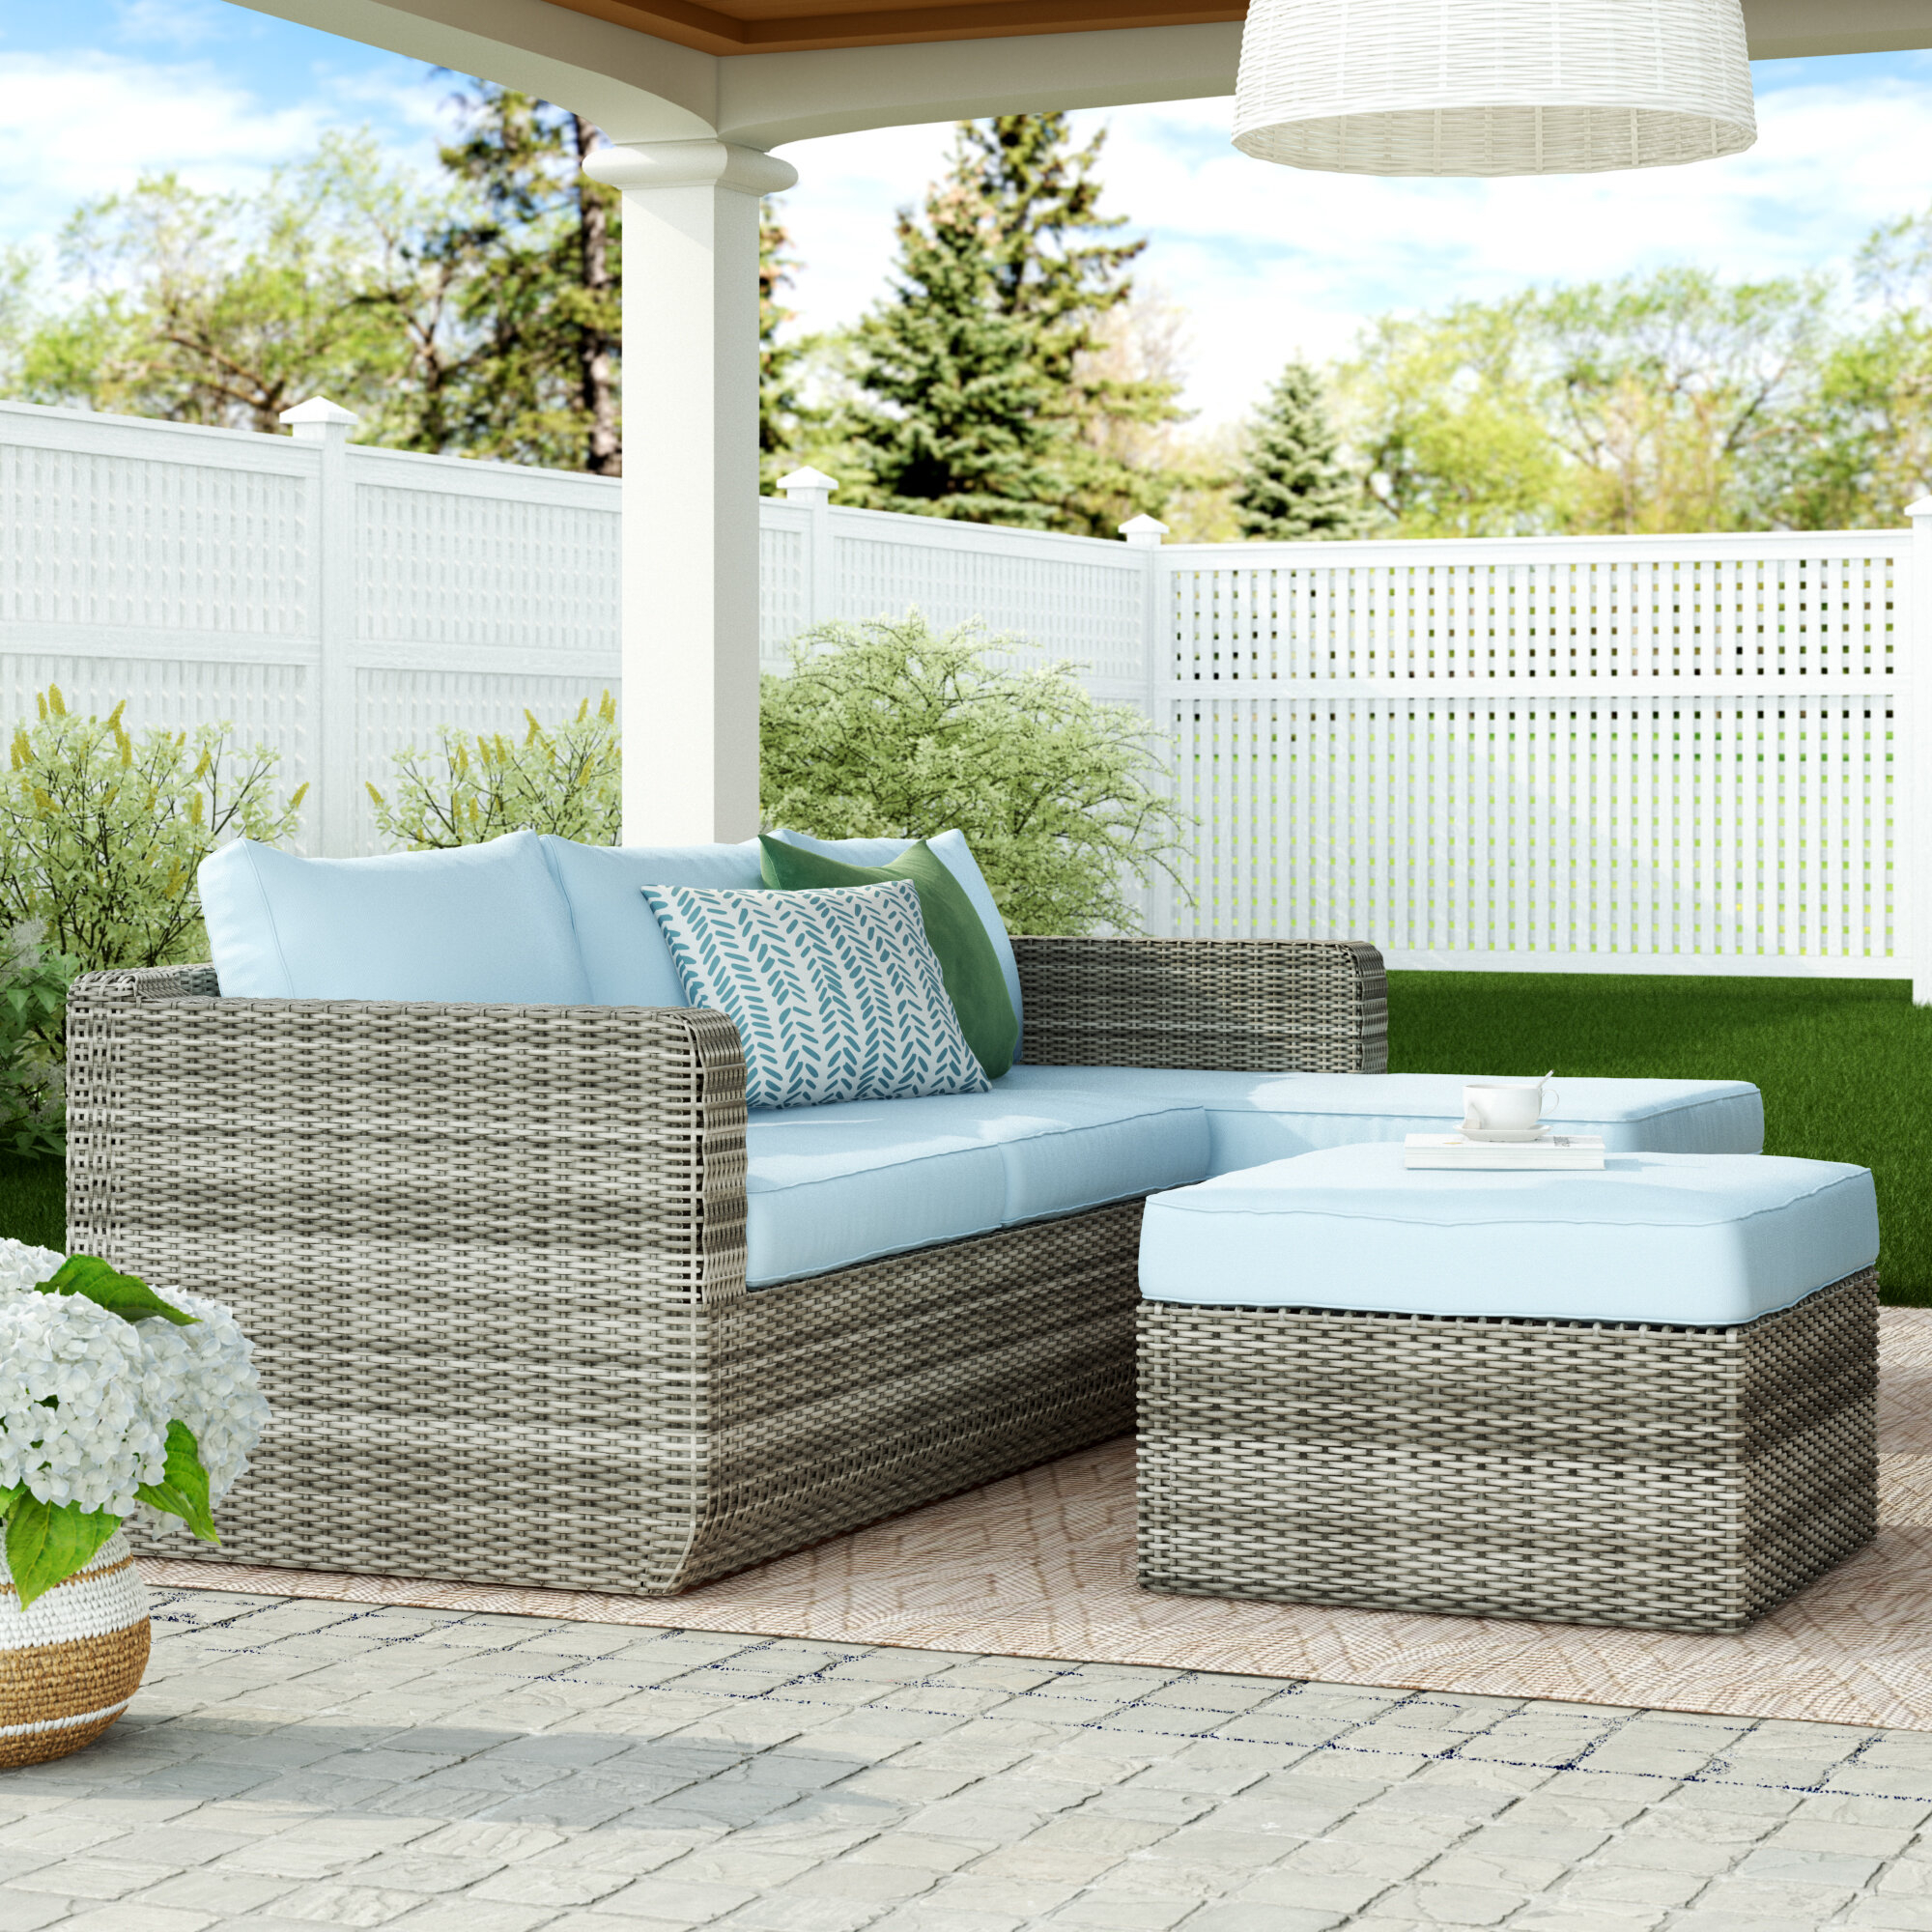 Outdoor Backyard Patio Garden Furniture Decor Glider Bench 2 In Outdoor Fabric Glider Benches (View 15 of 25)